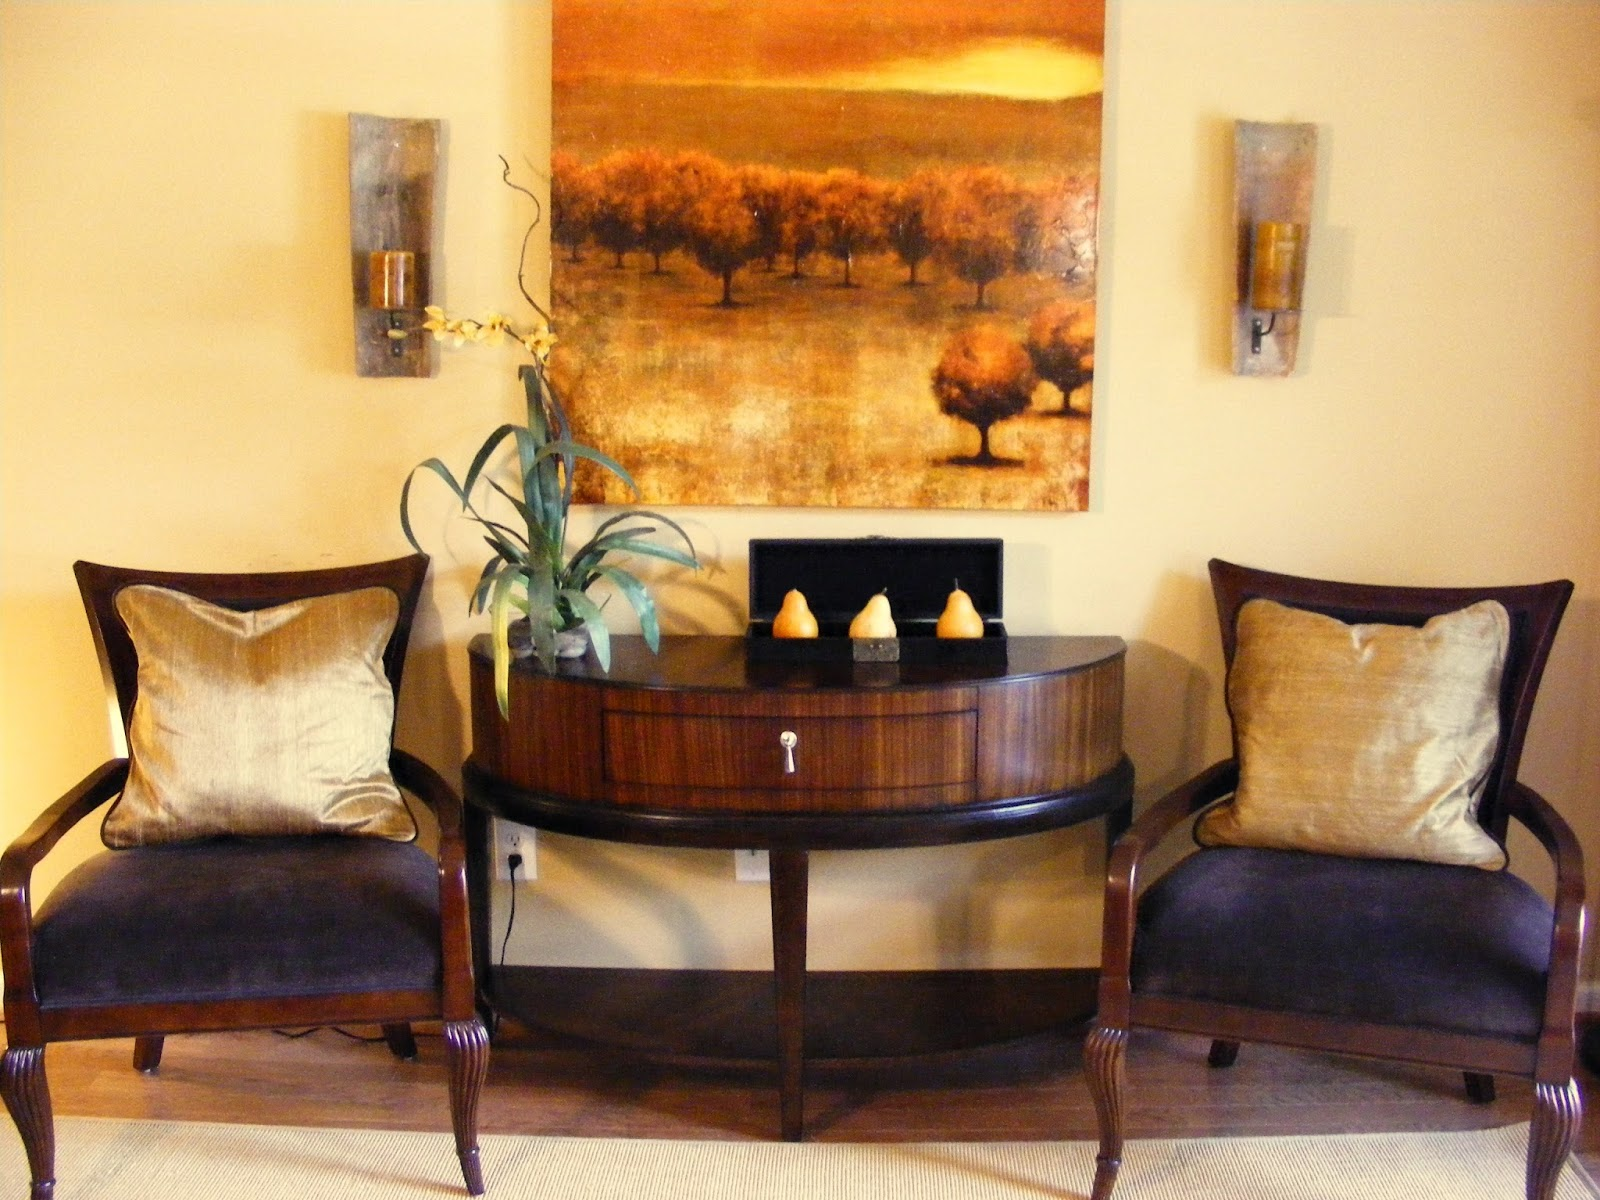 How to find a good interior designer 5 must read tips of - What does an interior designer do ...